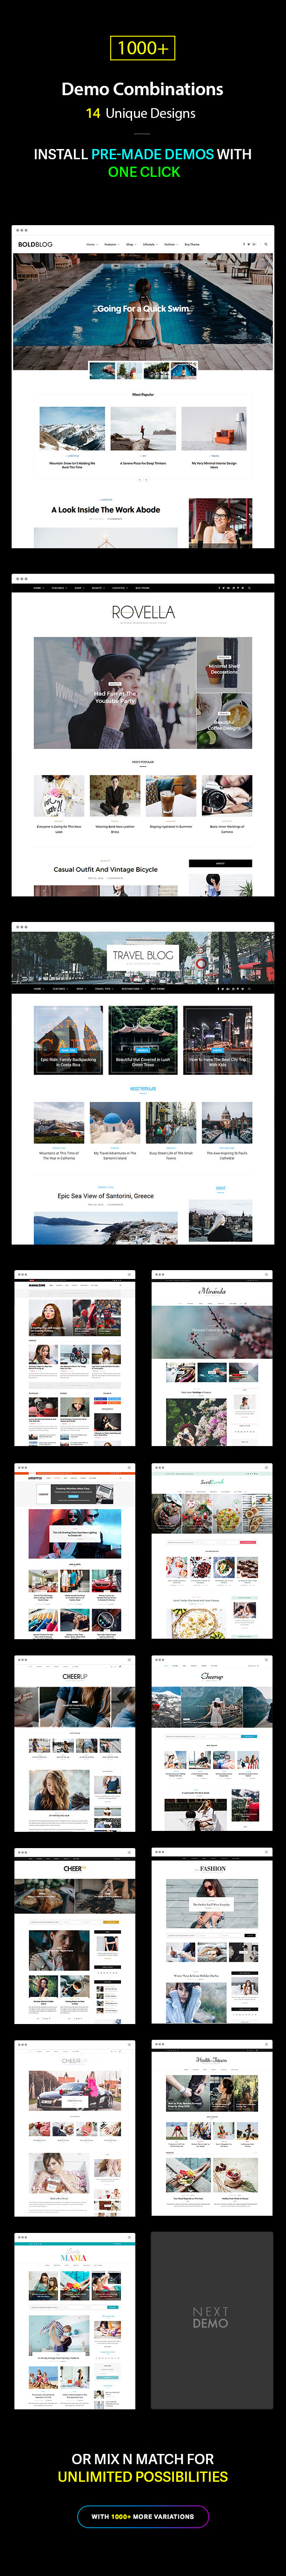 Multiple Blog and Magazine Layouts, 13+ Unique Designs